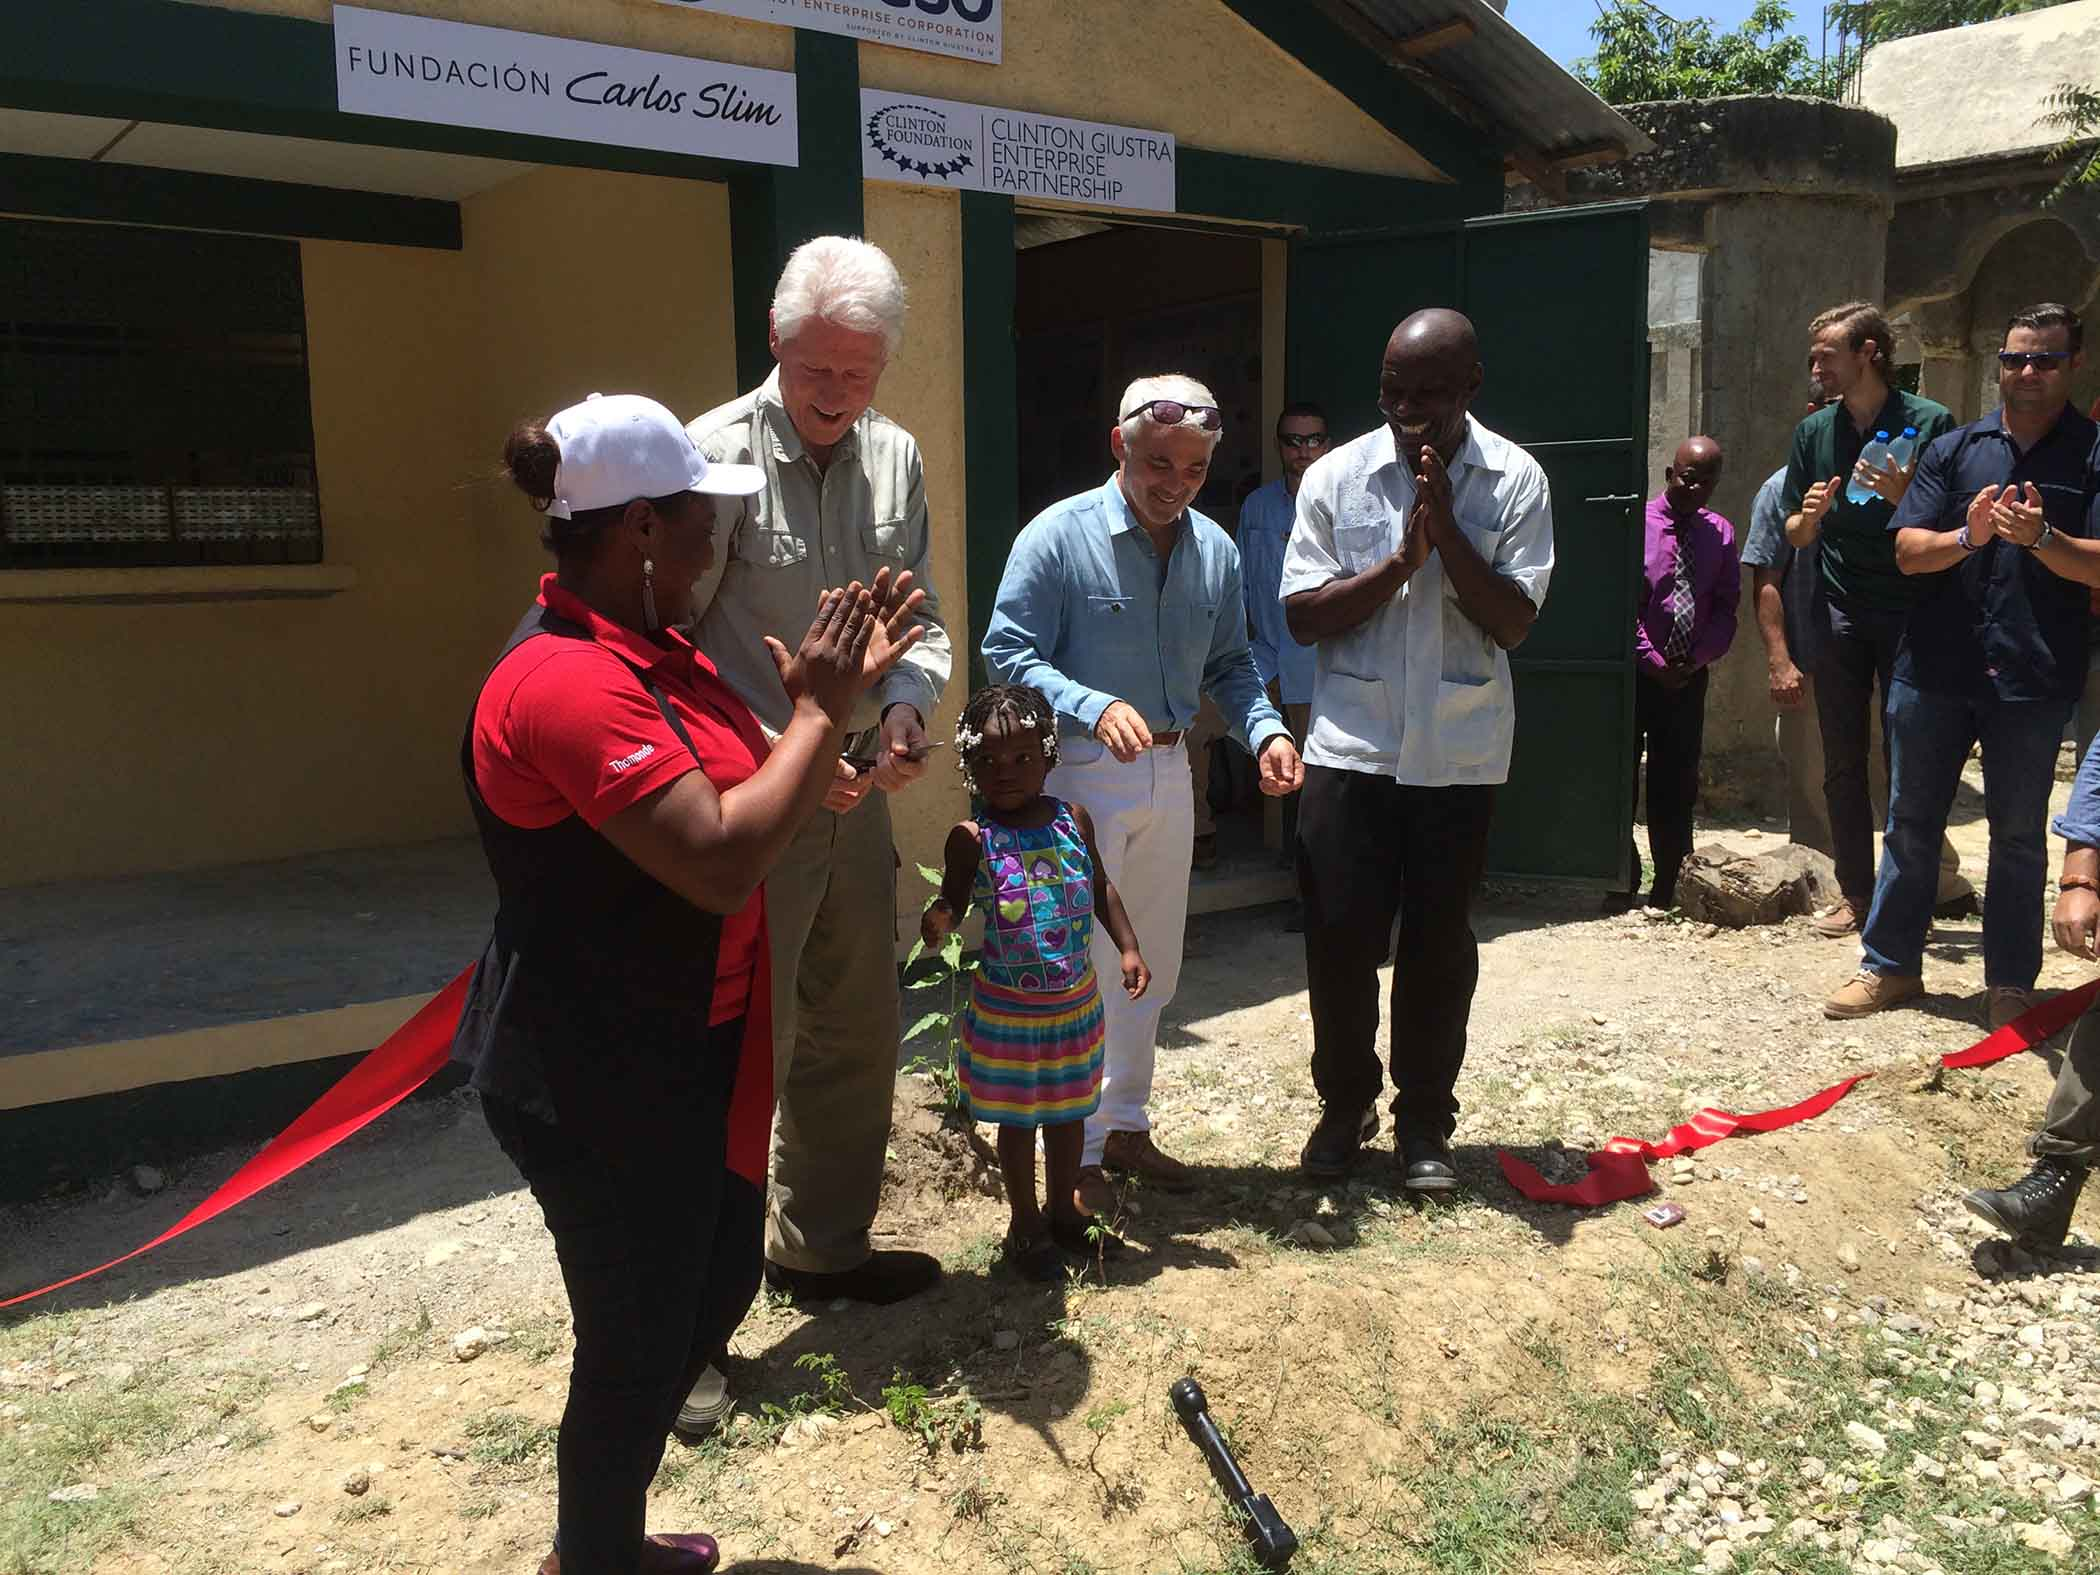 Former U.S. President Bill Clinton gathers with a group of townspeople from Tierra Muscady, Haiti, where he and philanthropist Frank Giustra launched the new Acceso Peanut Enterprise Corp., which is designed to improve the livelihoods of more than 12,000 smallholder peanut farmers.